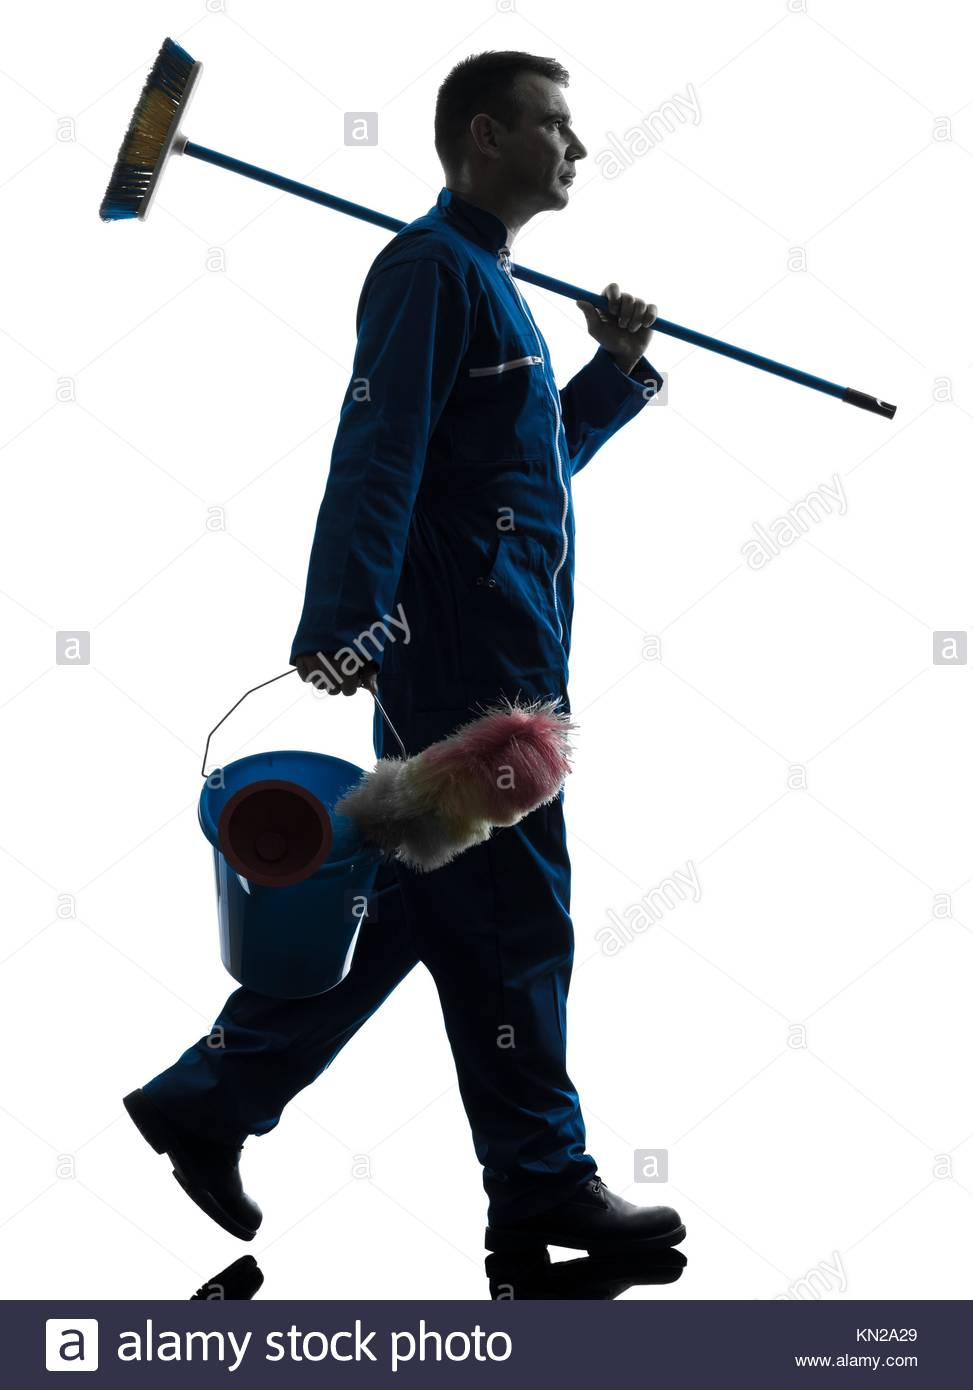 973x1390e Caucasian Janitor Cleaner Cleaning Silhouette In Studio